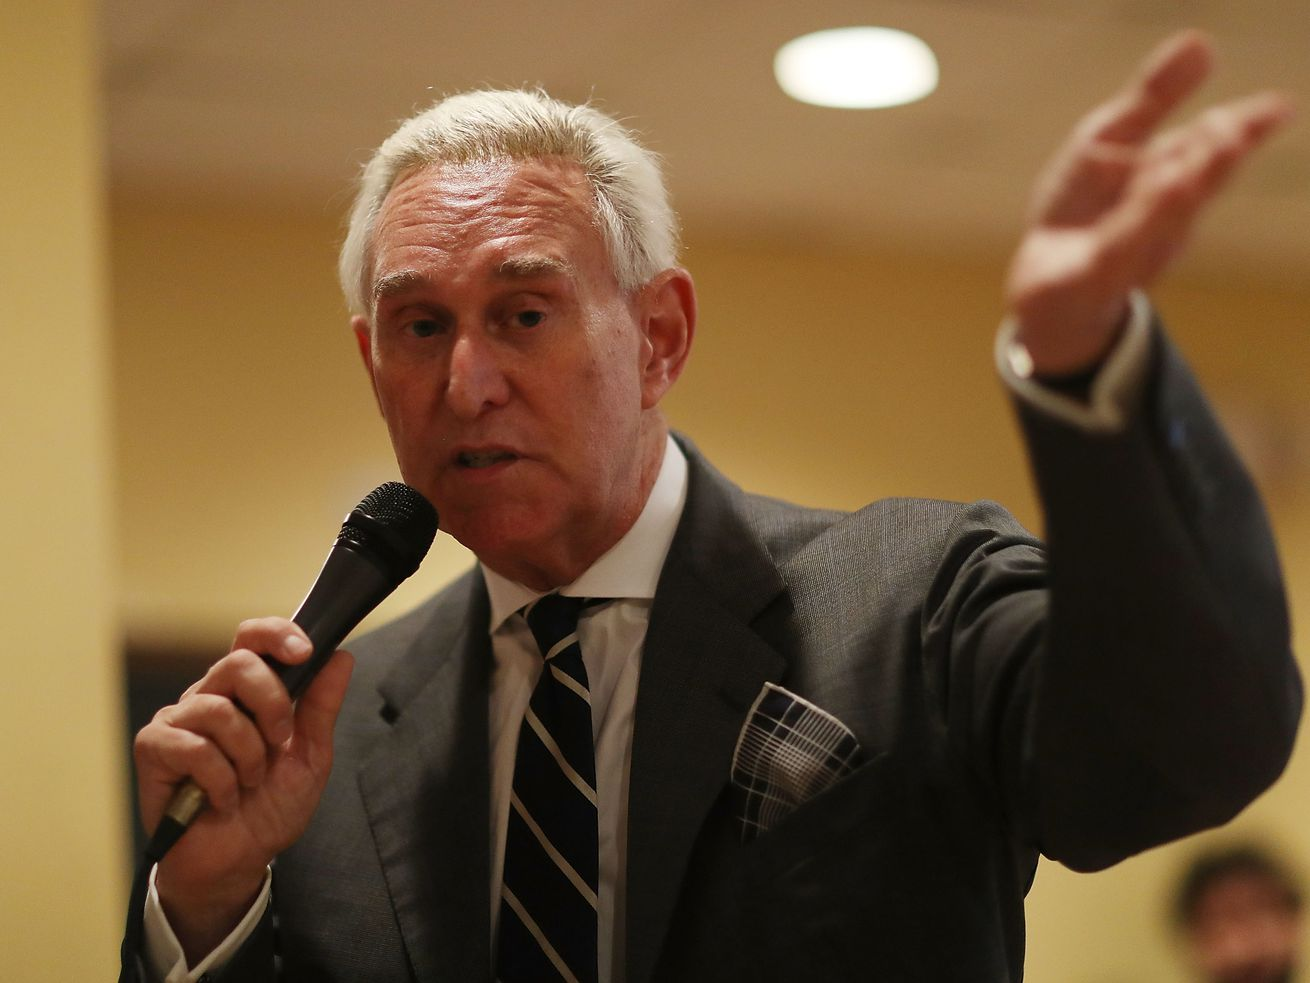 Roger Stone on May 22, 2017 in Coral Gables, Florida.